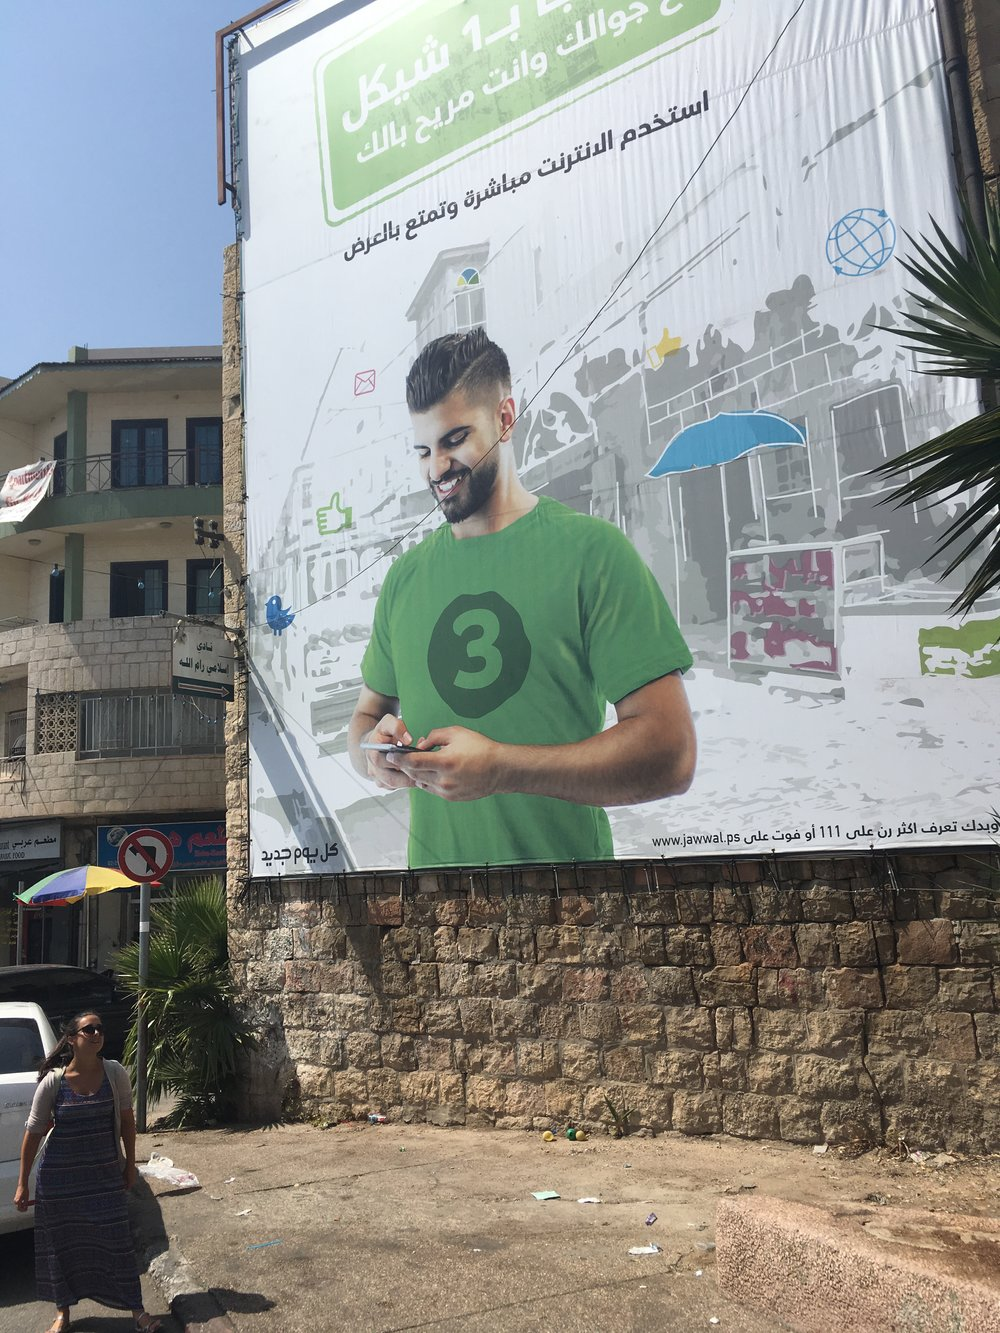 A king sized billboard.  It's for the mobile service provider, not the haircut.